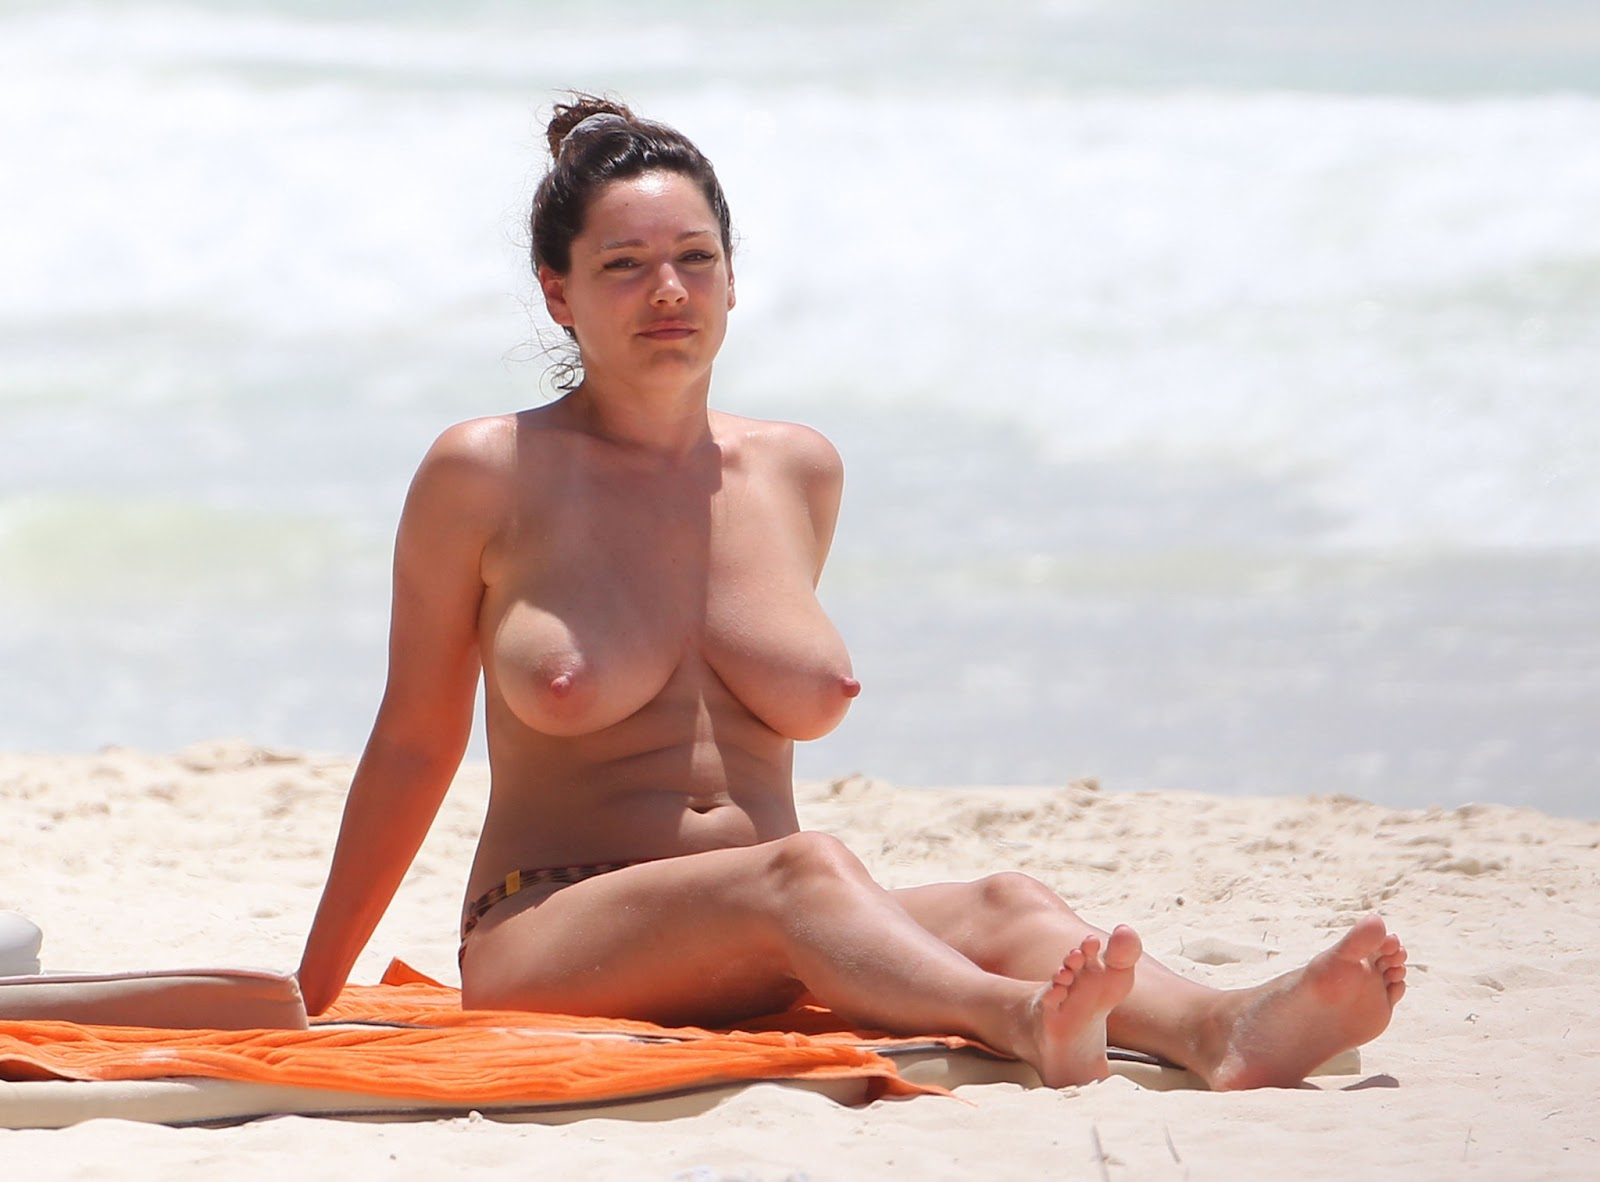 Good idea. Kelly brook nude bikini think